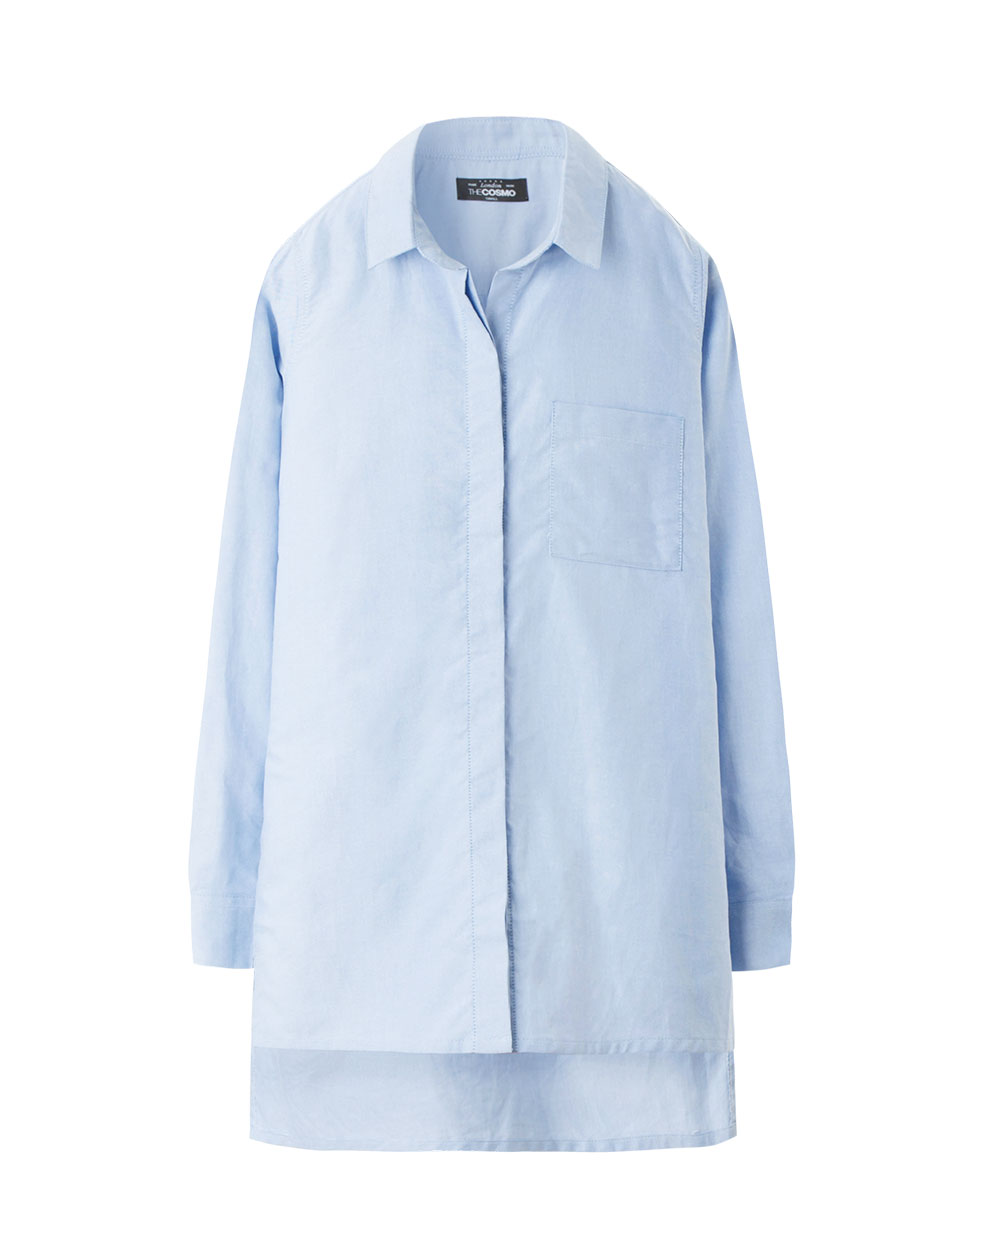 OVERSIZED SHIRT (BLUE)